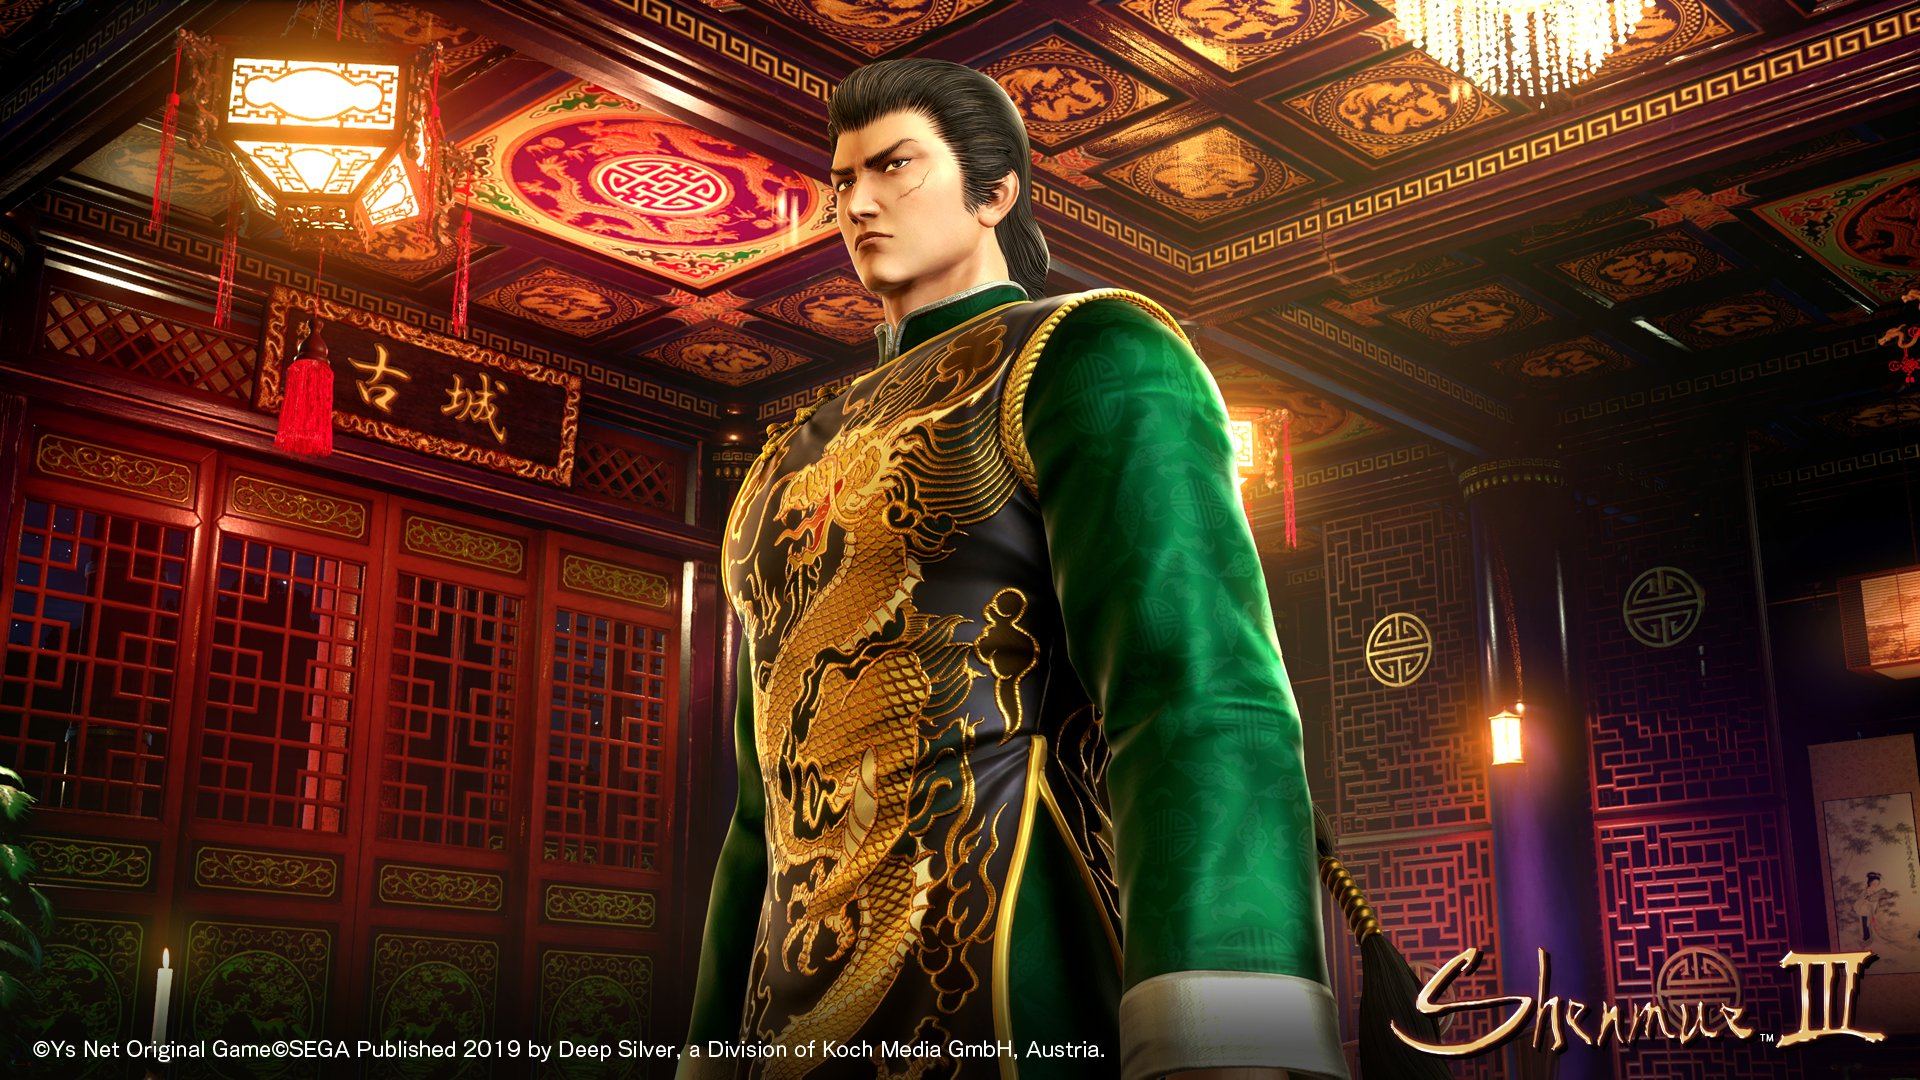 Shenmue III, Shenmue 3, release date, gameplay, trailer, PlayStation 4, game, update, story, new screenshot